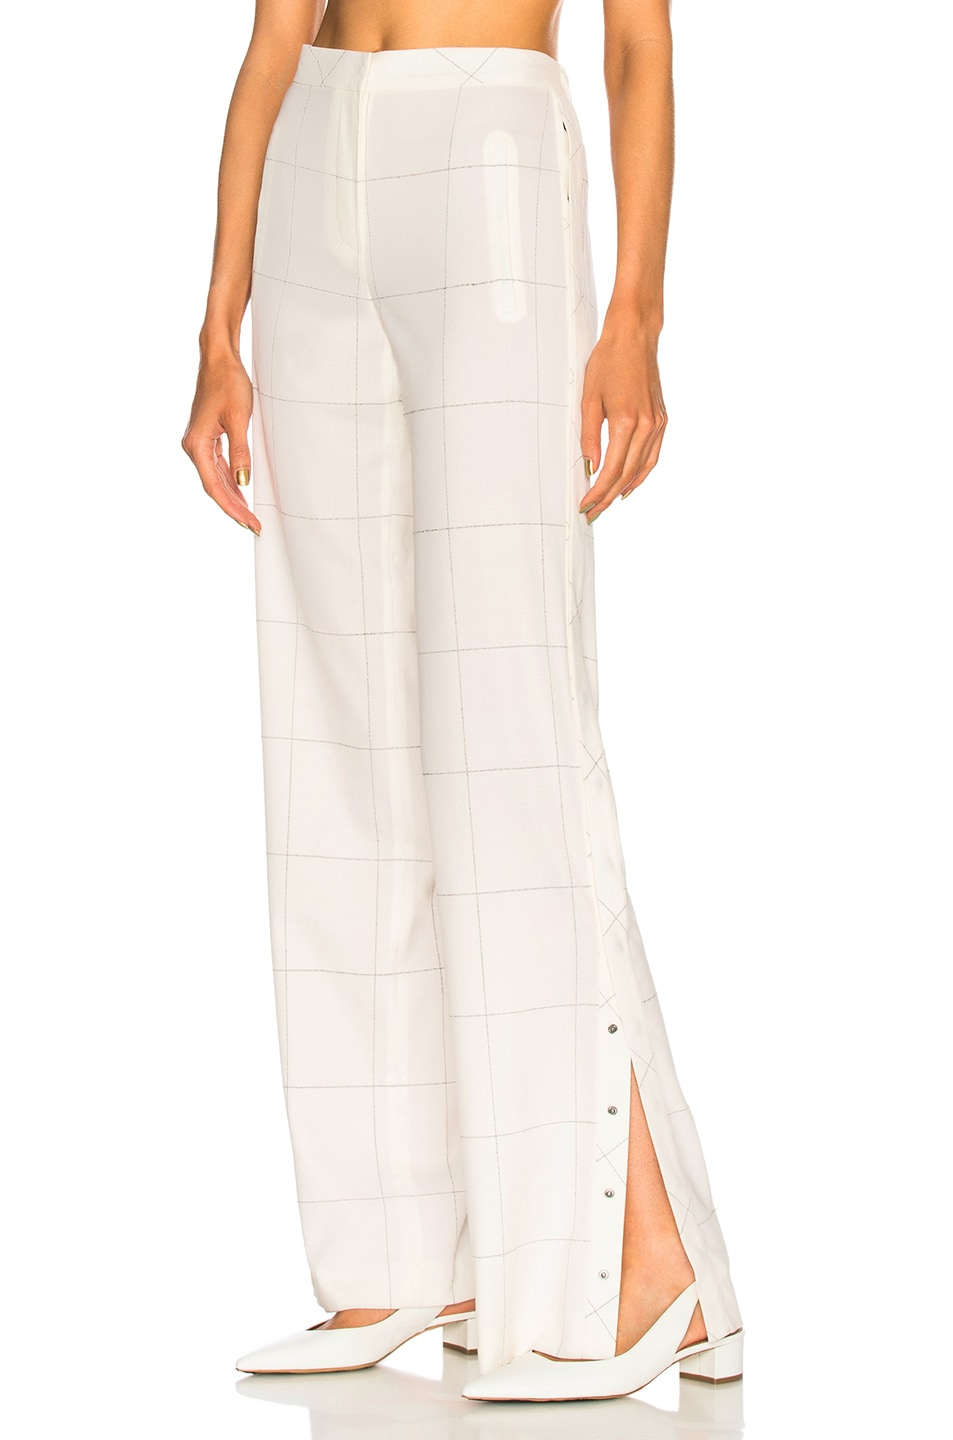 ZEYNEP ARCAY PLAID SIDE SNAP PANTS IN WHITE,CHECKERED & PLAID